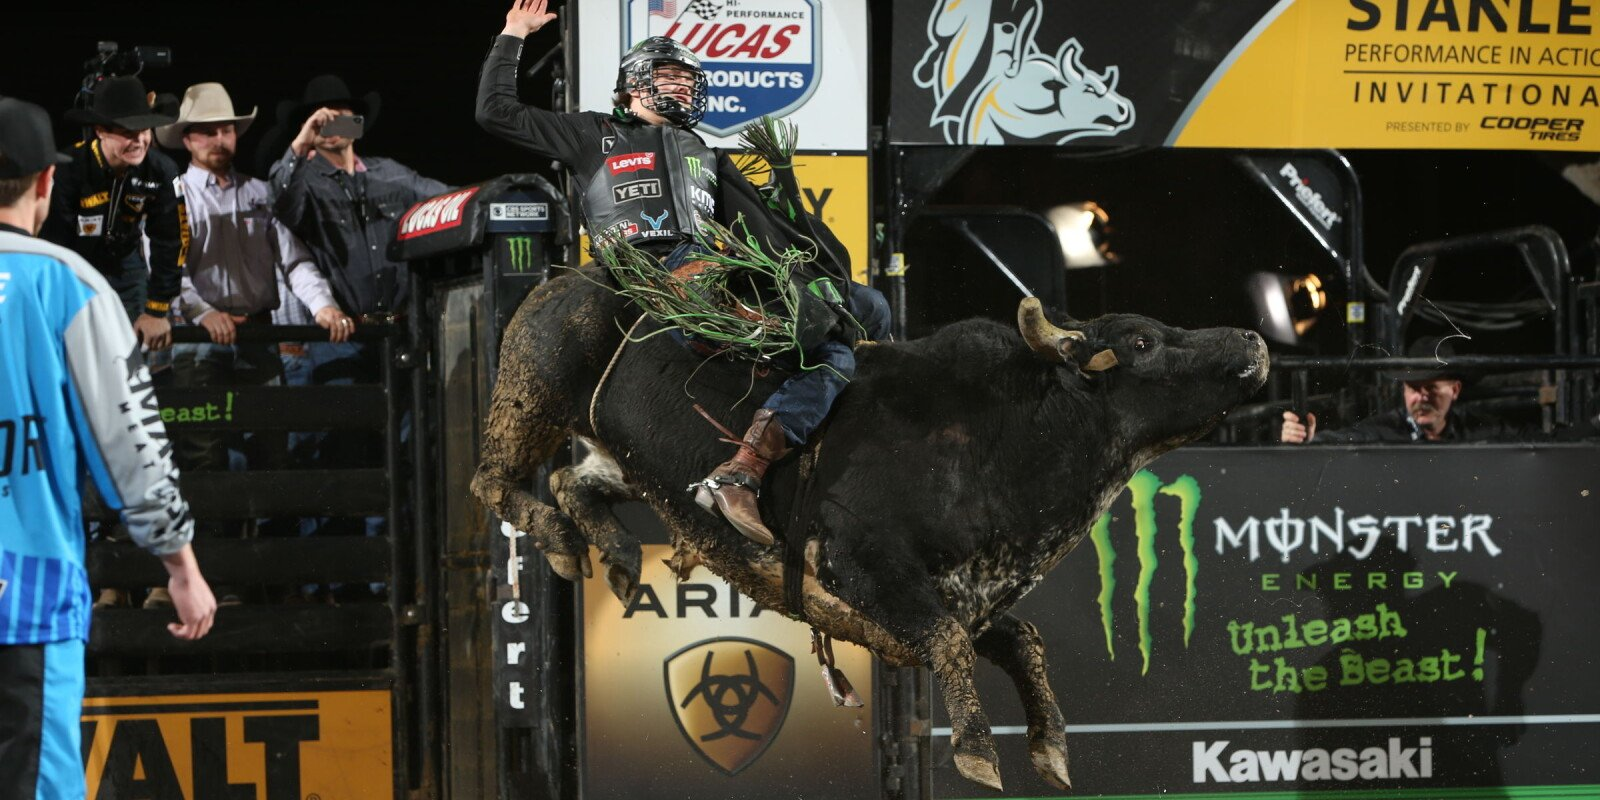 Images from 2018 PBR Billings, Montana